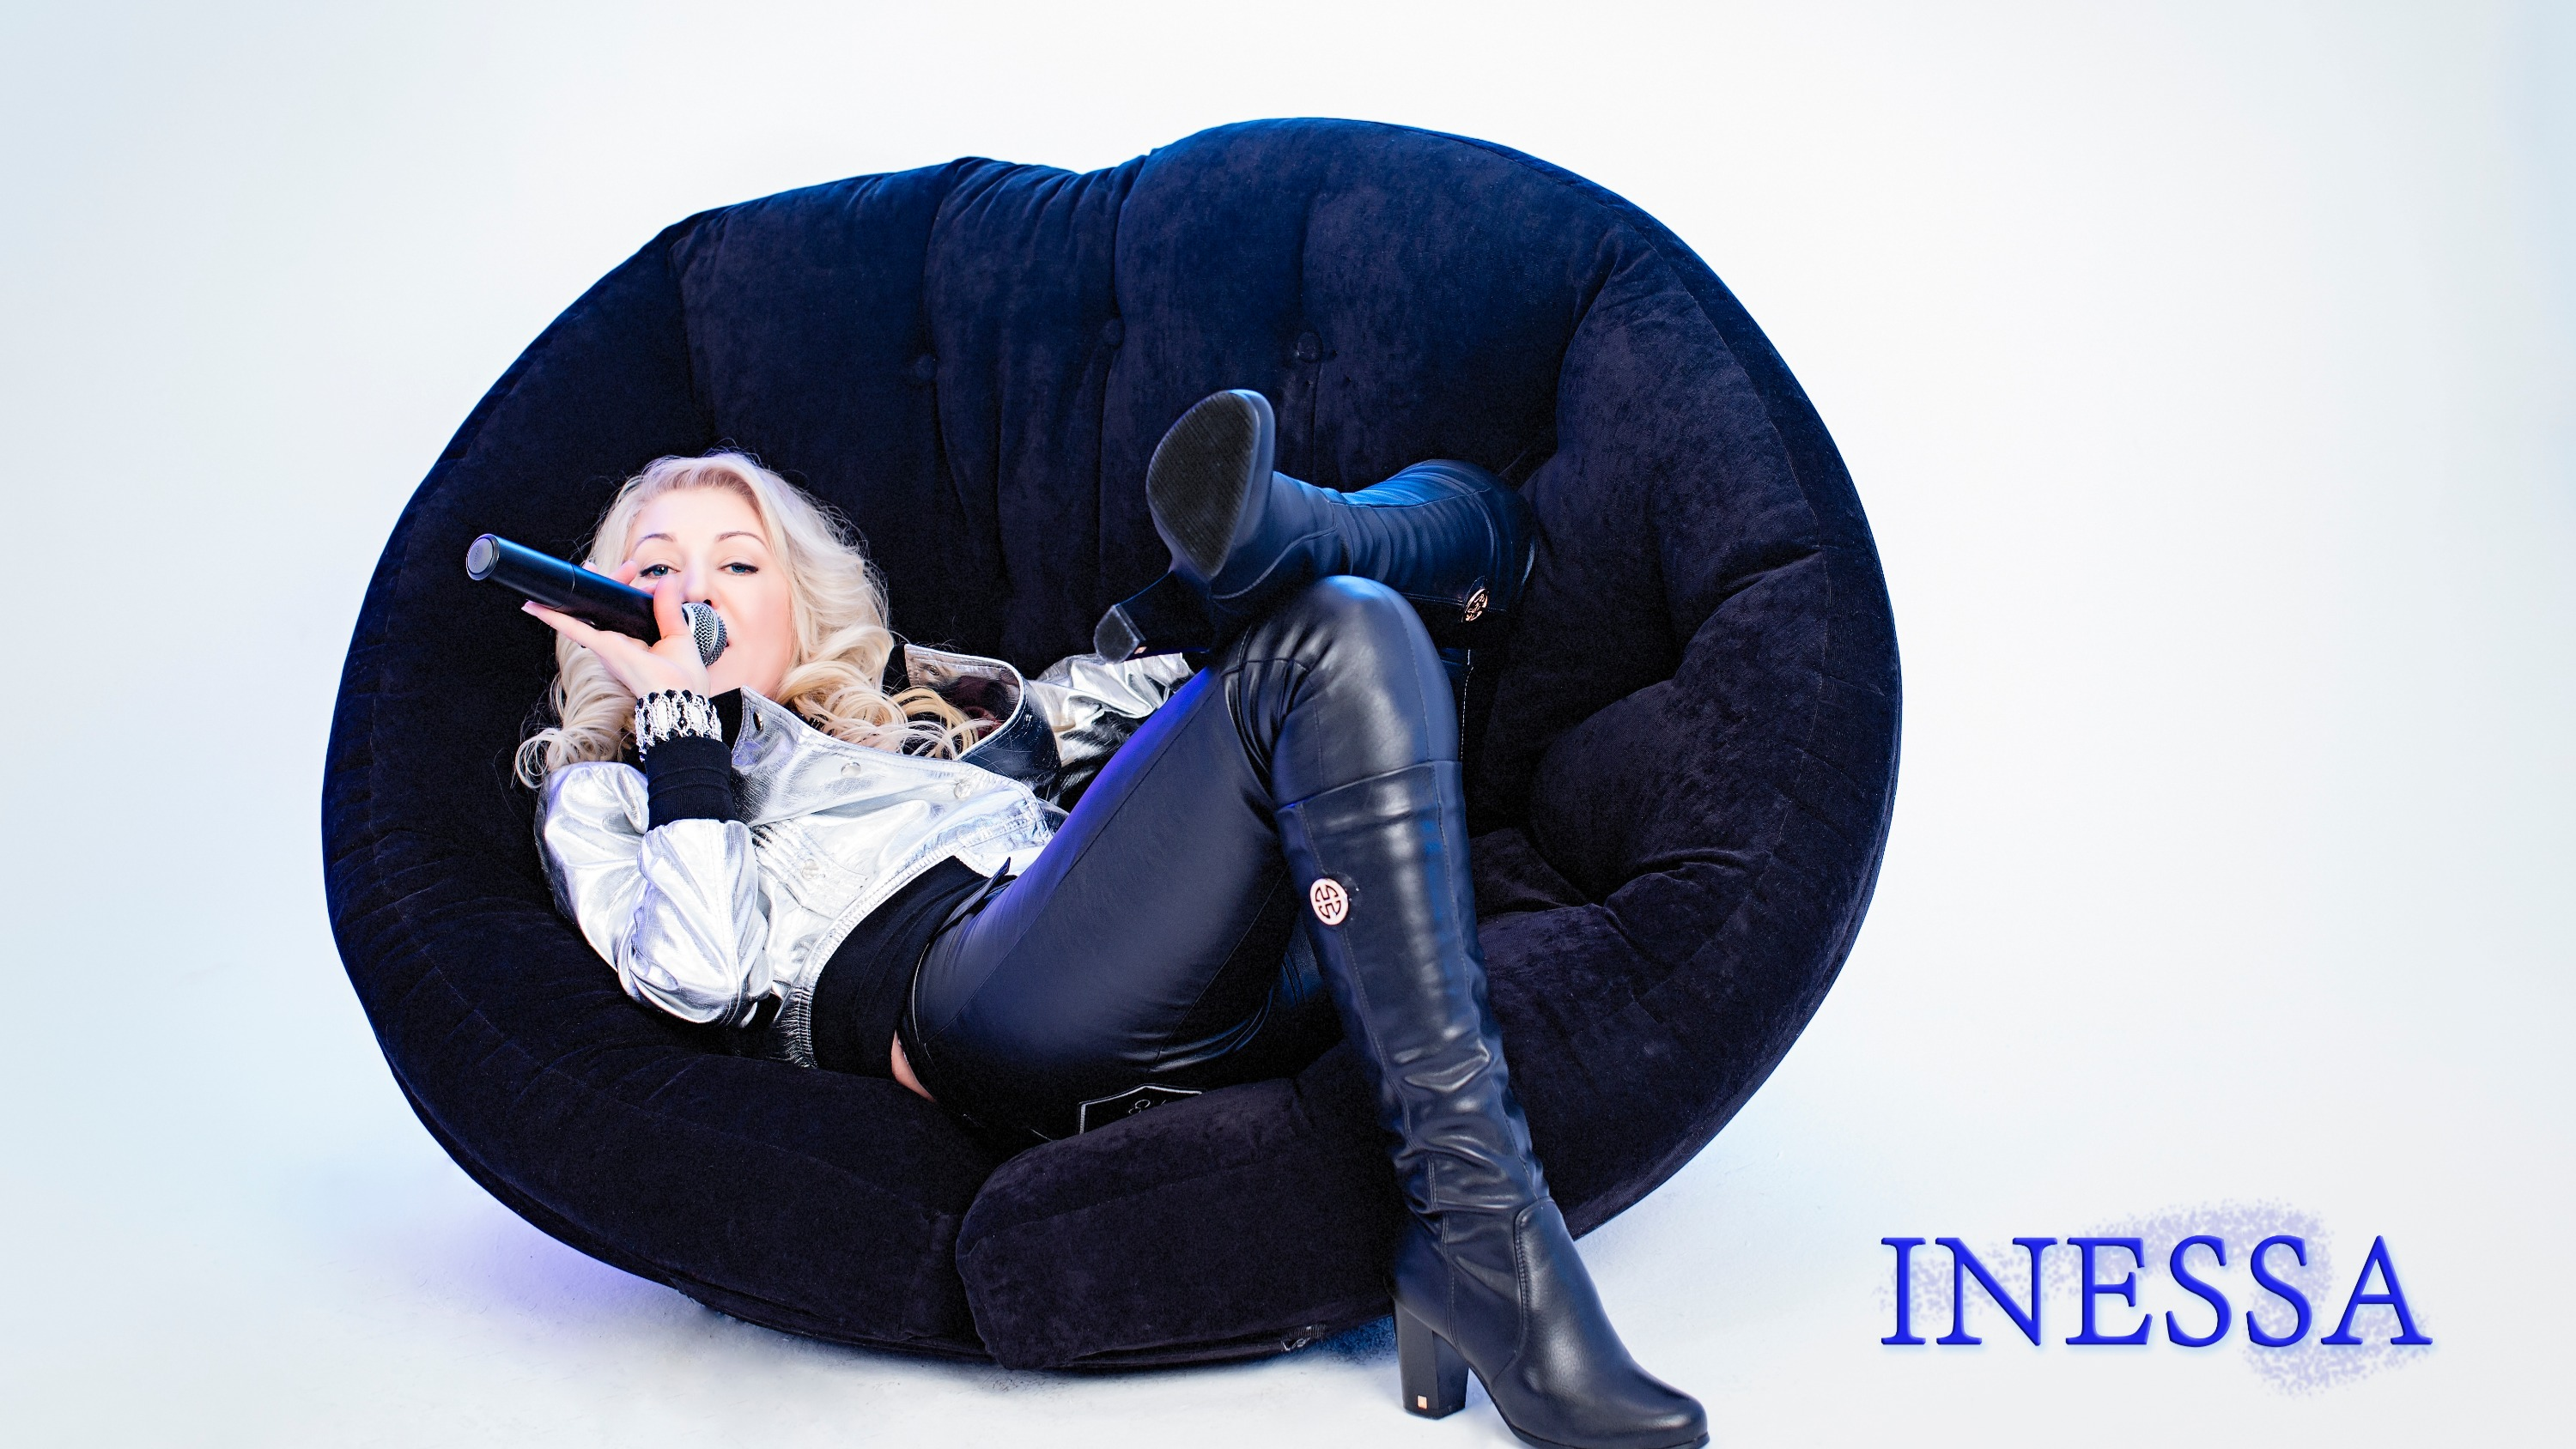 Singer INESSA | Moscow, Russia